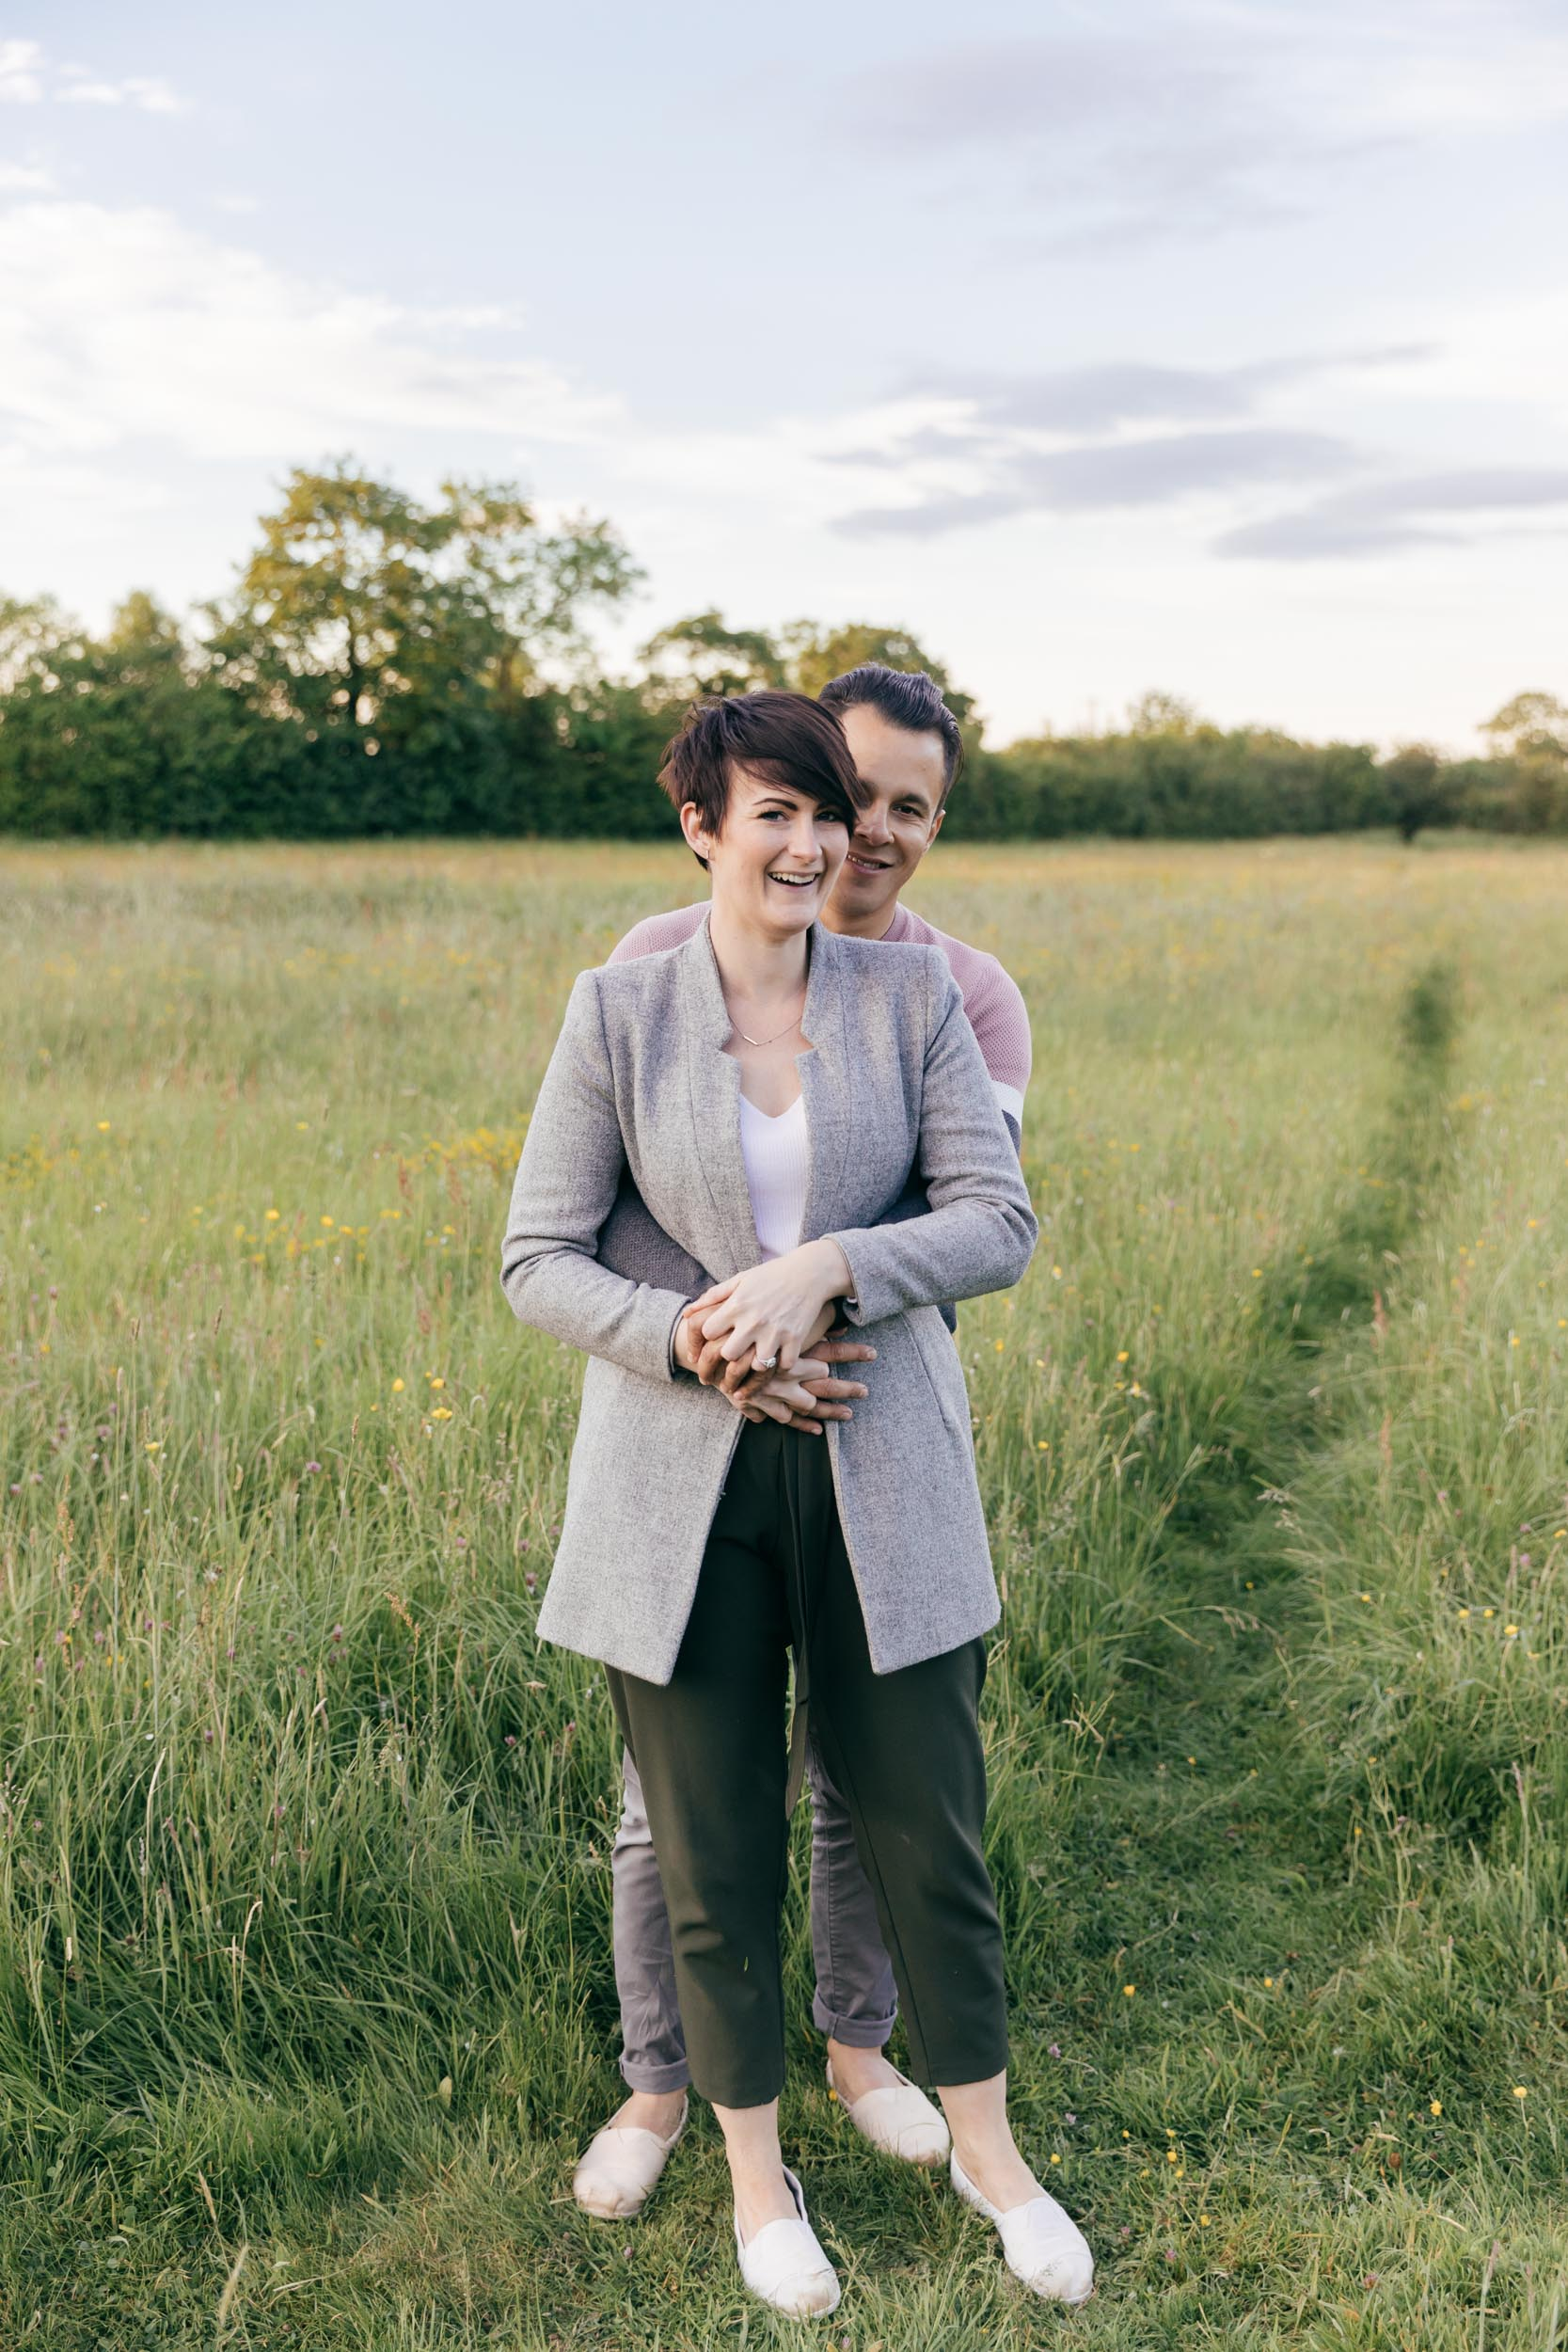 Couples portraits by wedding photographer gloucestershire